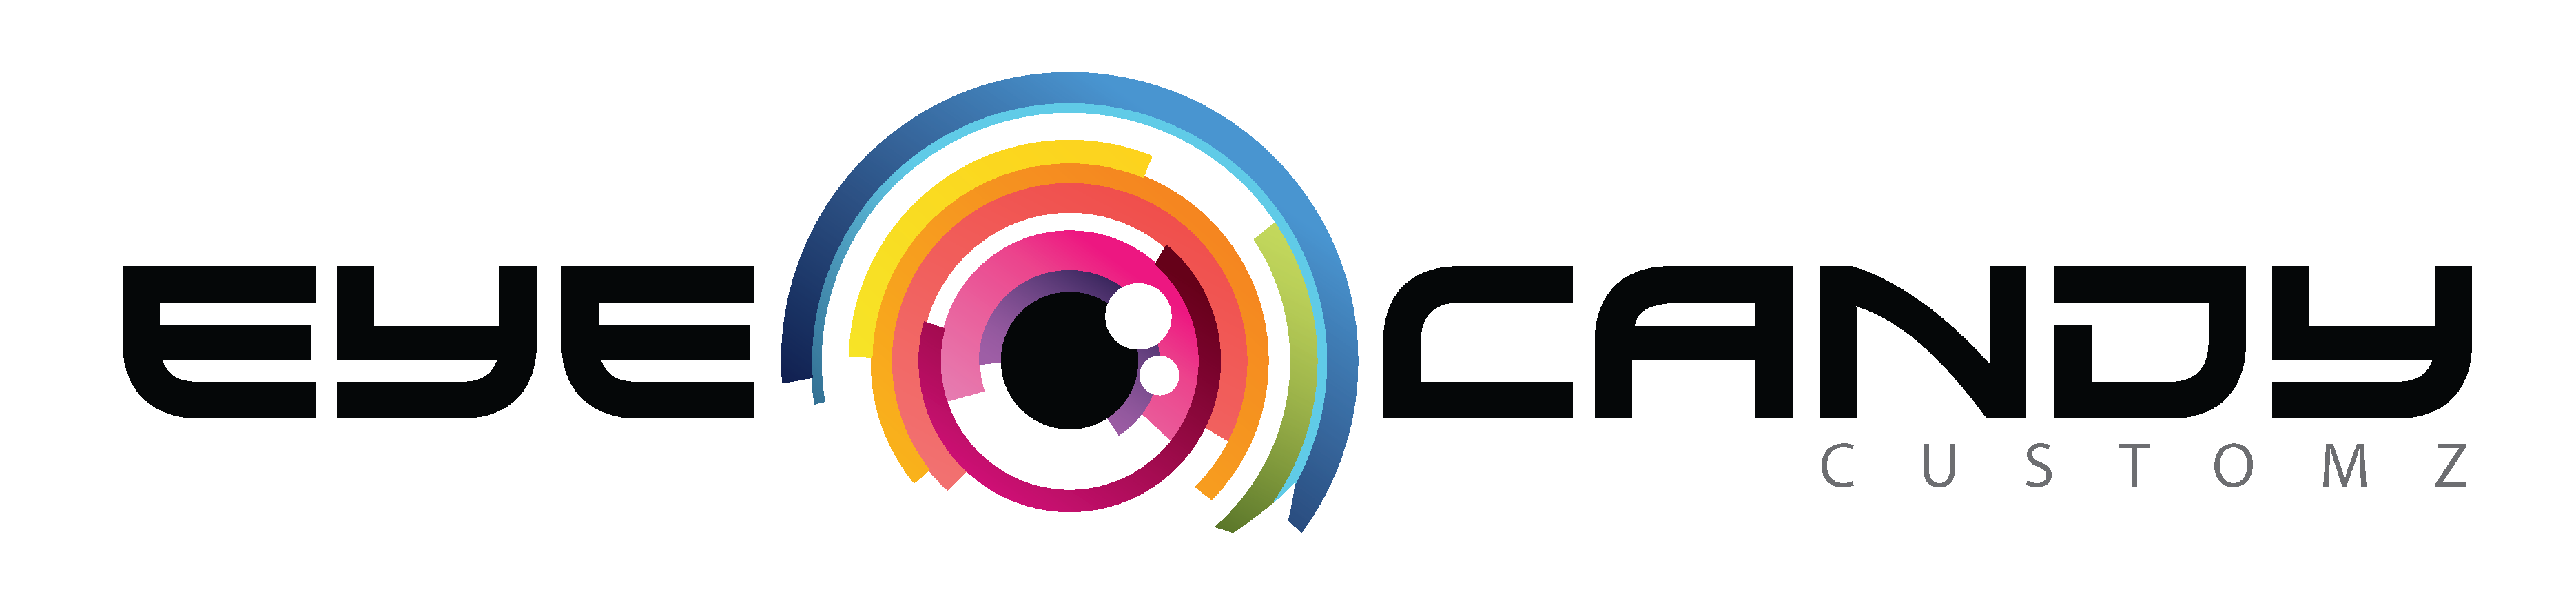 copy-of-eyecandy-logo-main-page-2-page-7.png